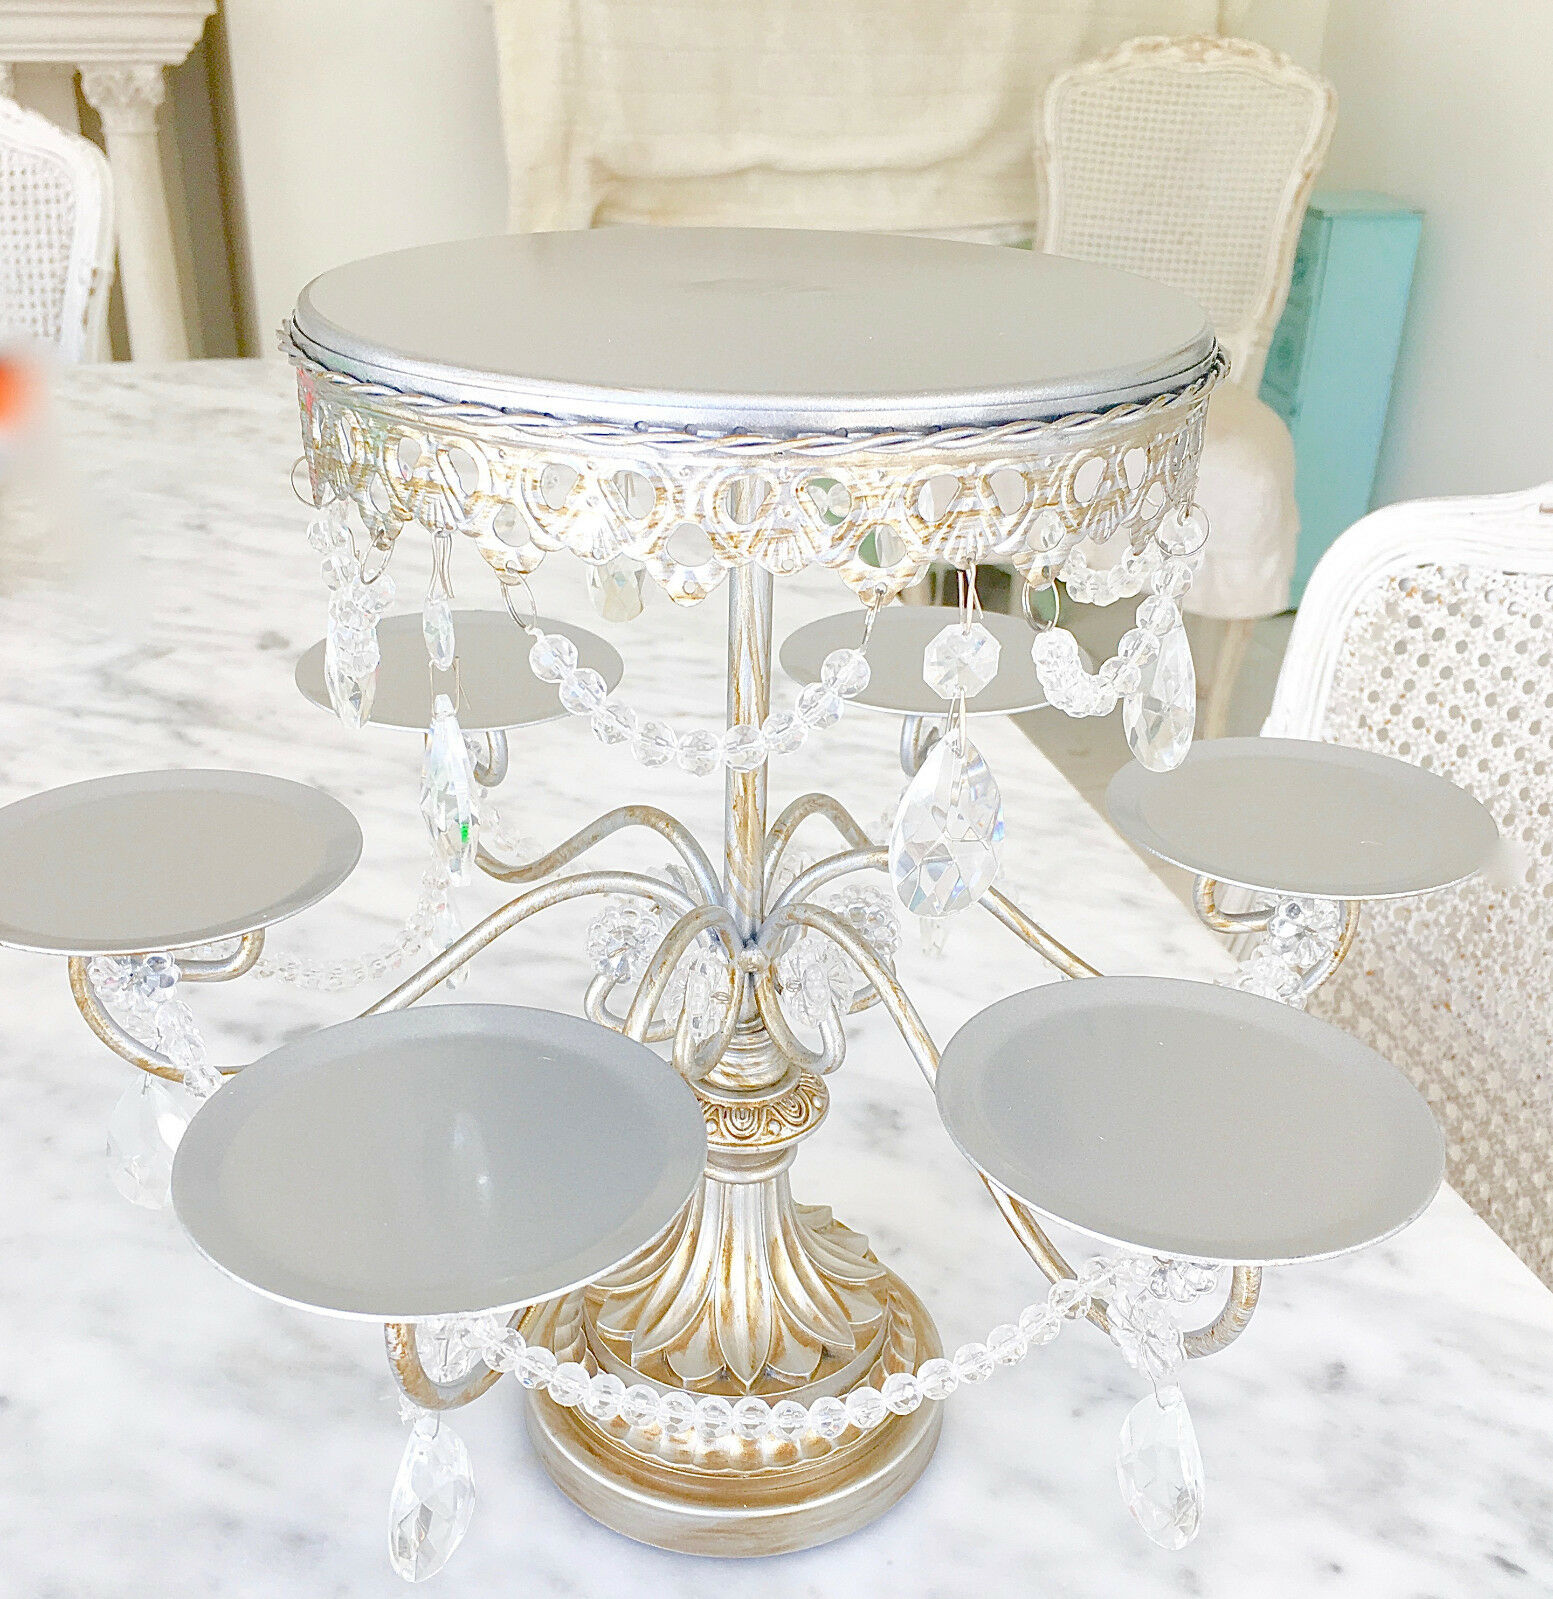 Shabby Chic Cake Stands With Crystals